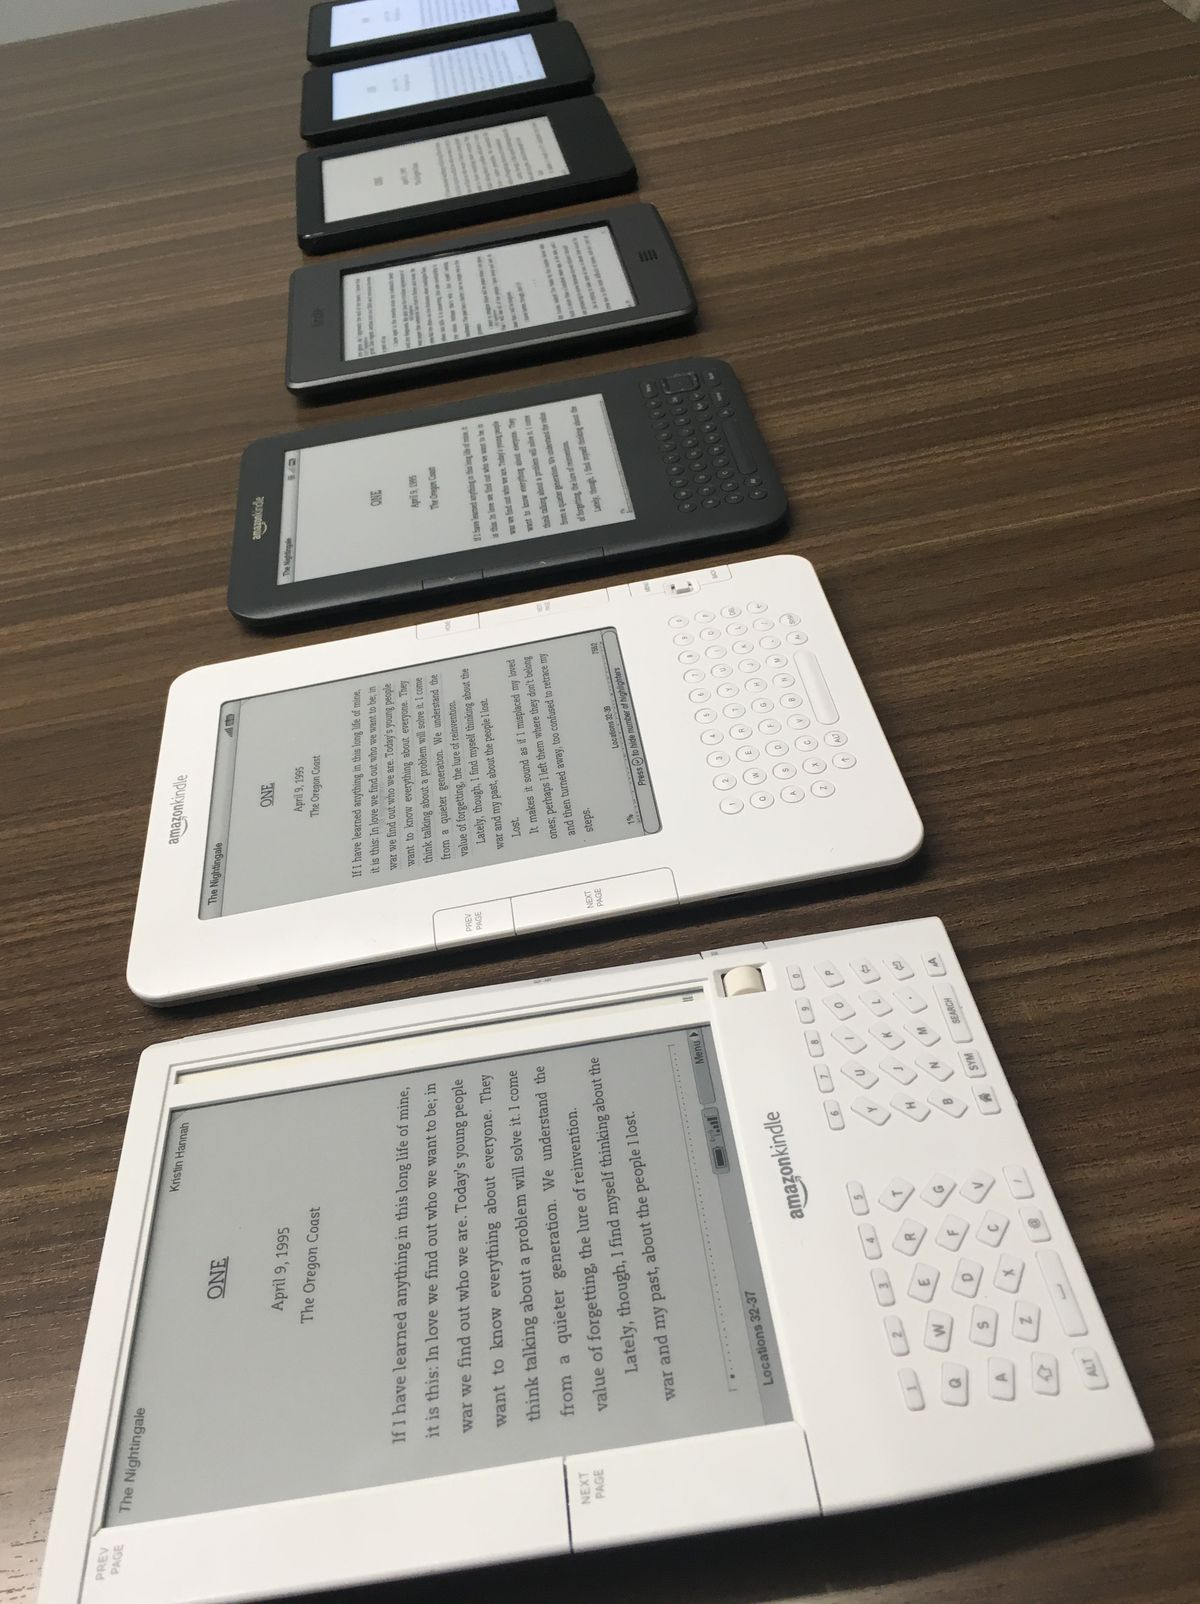 Battery life has been a strong suit of the Kindle since the first model arrived in 2007.